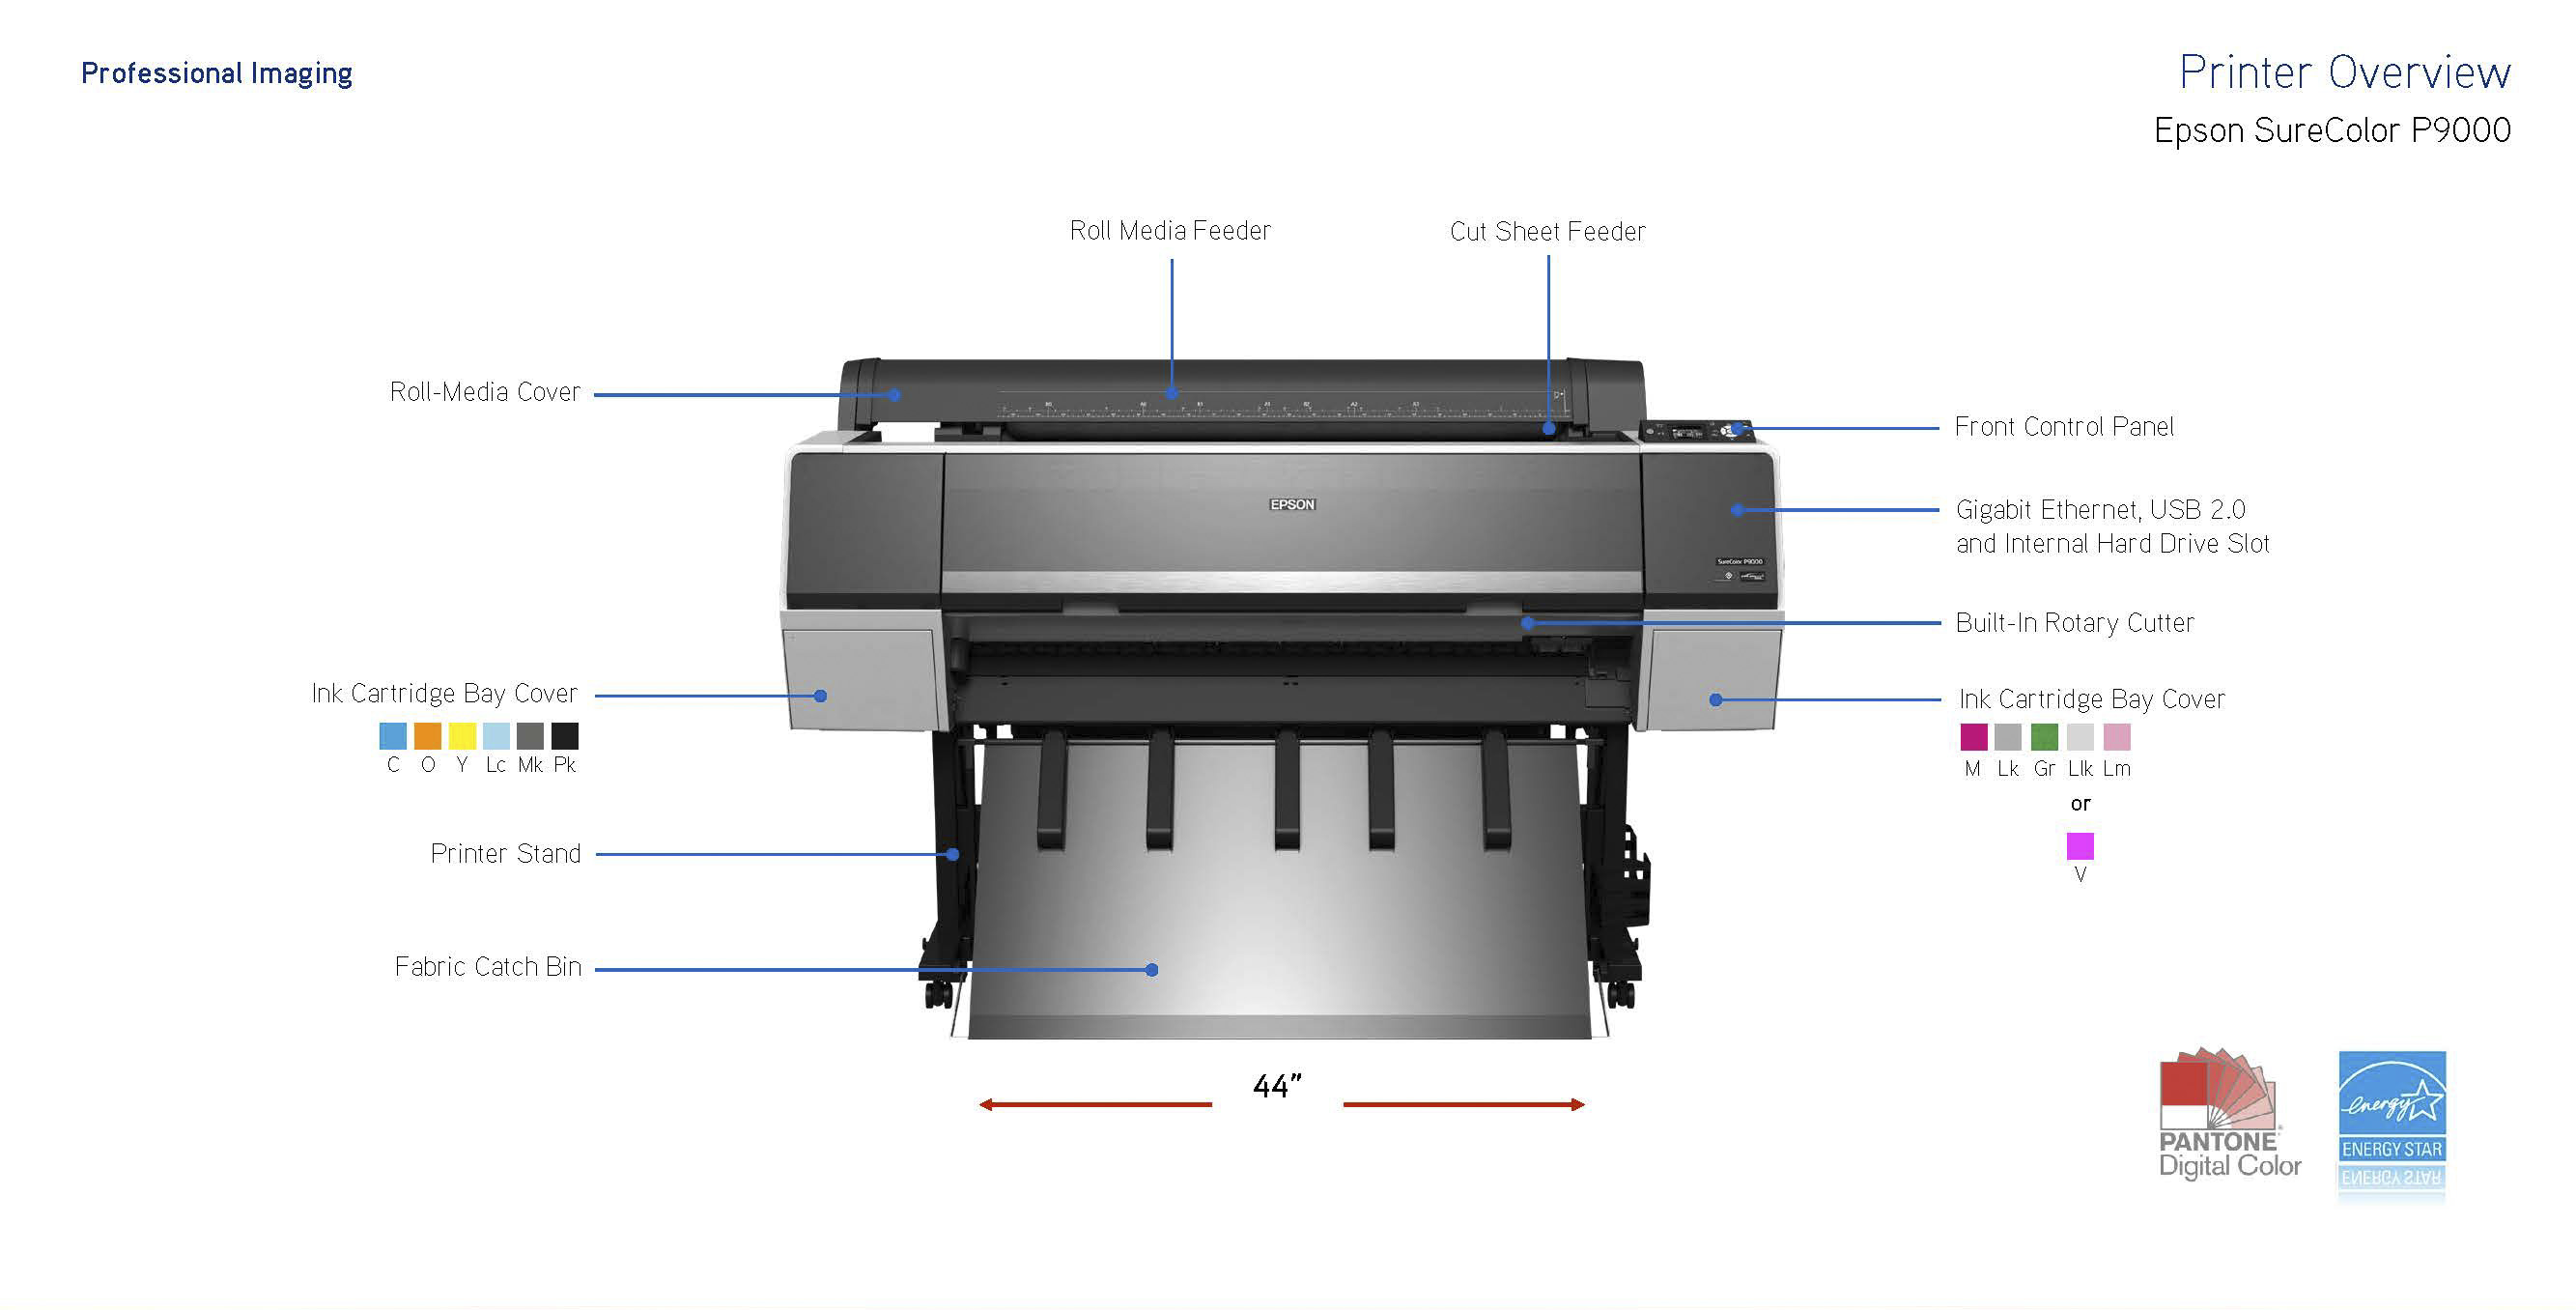 printer overview